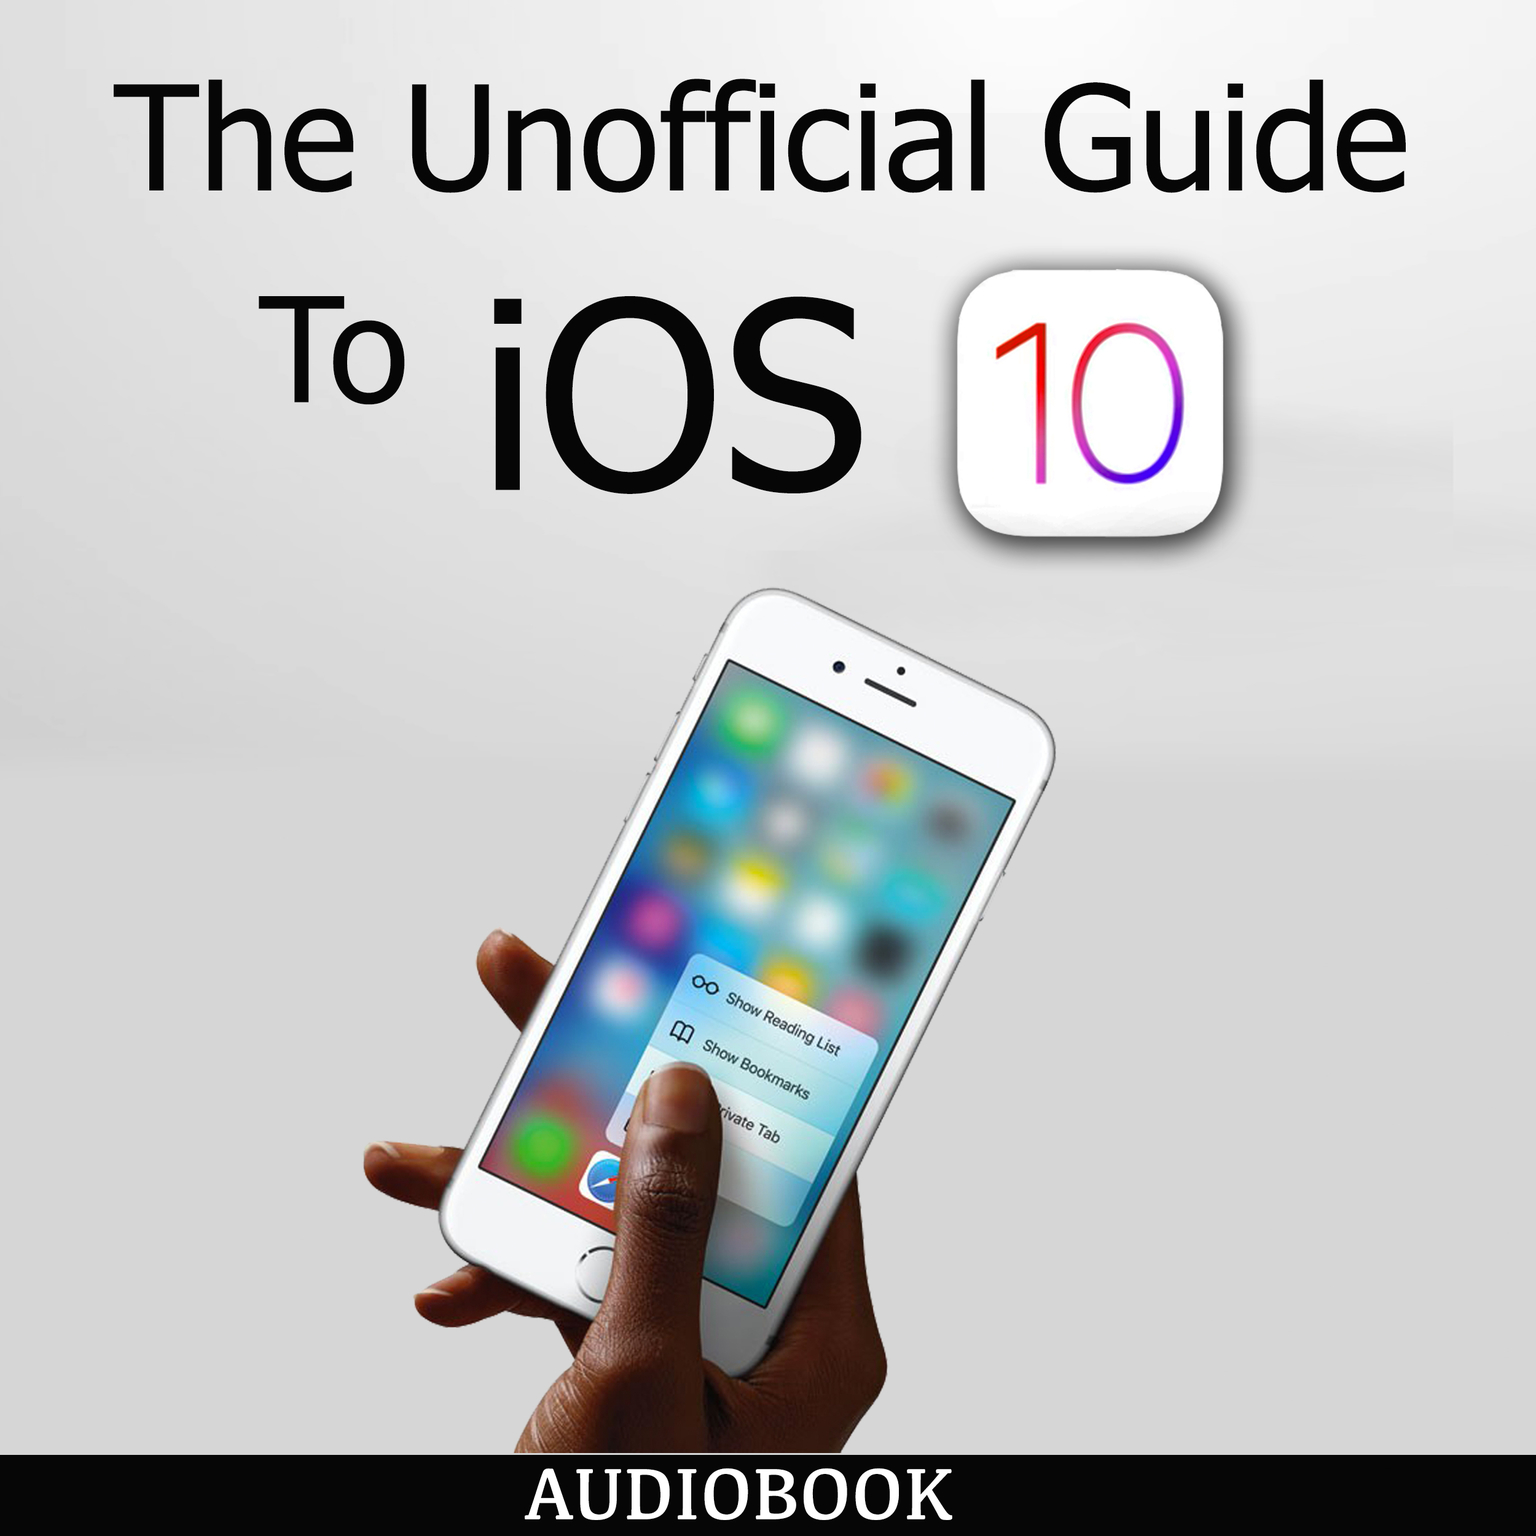 The Unofficial Guide To iOS 10 Audiobook, by My Ebook Publishing House